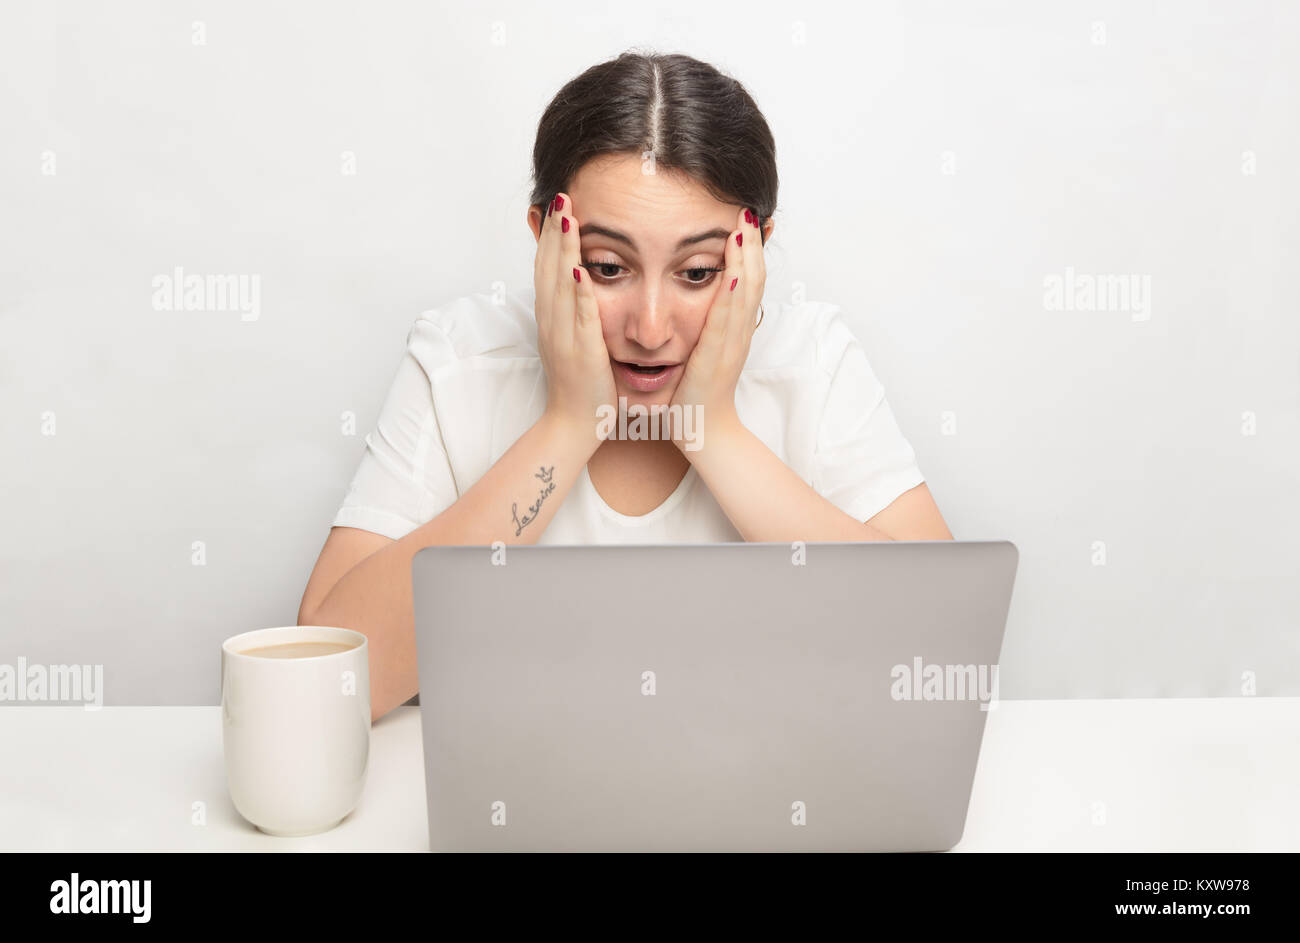 Young woman staring at a laptop in disbelief and shock resting her face on her hands as she stares at the screen - Stock Image